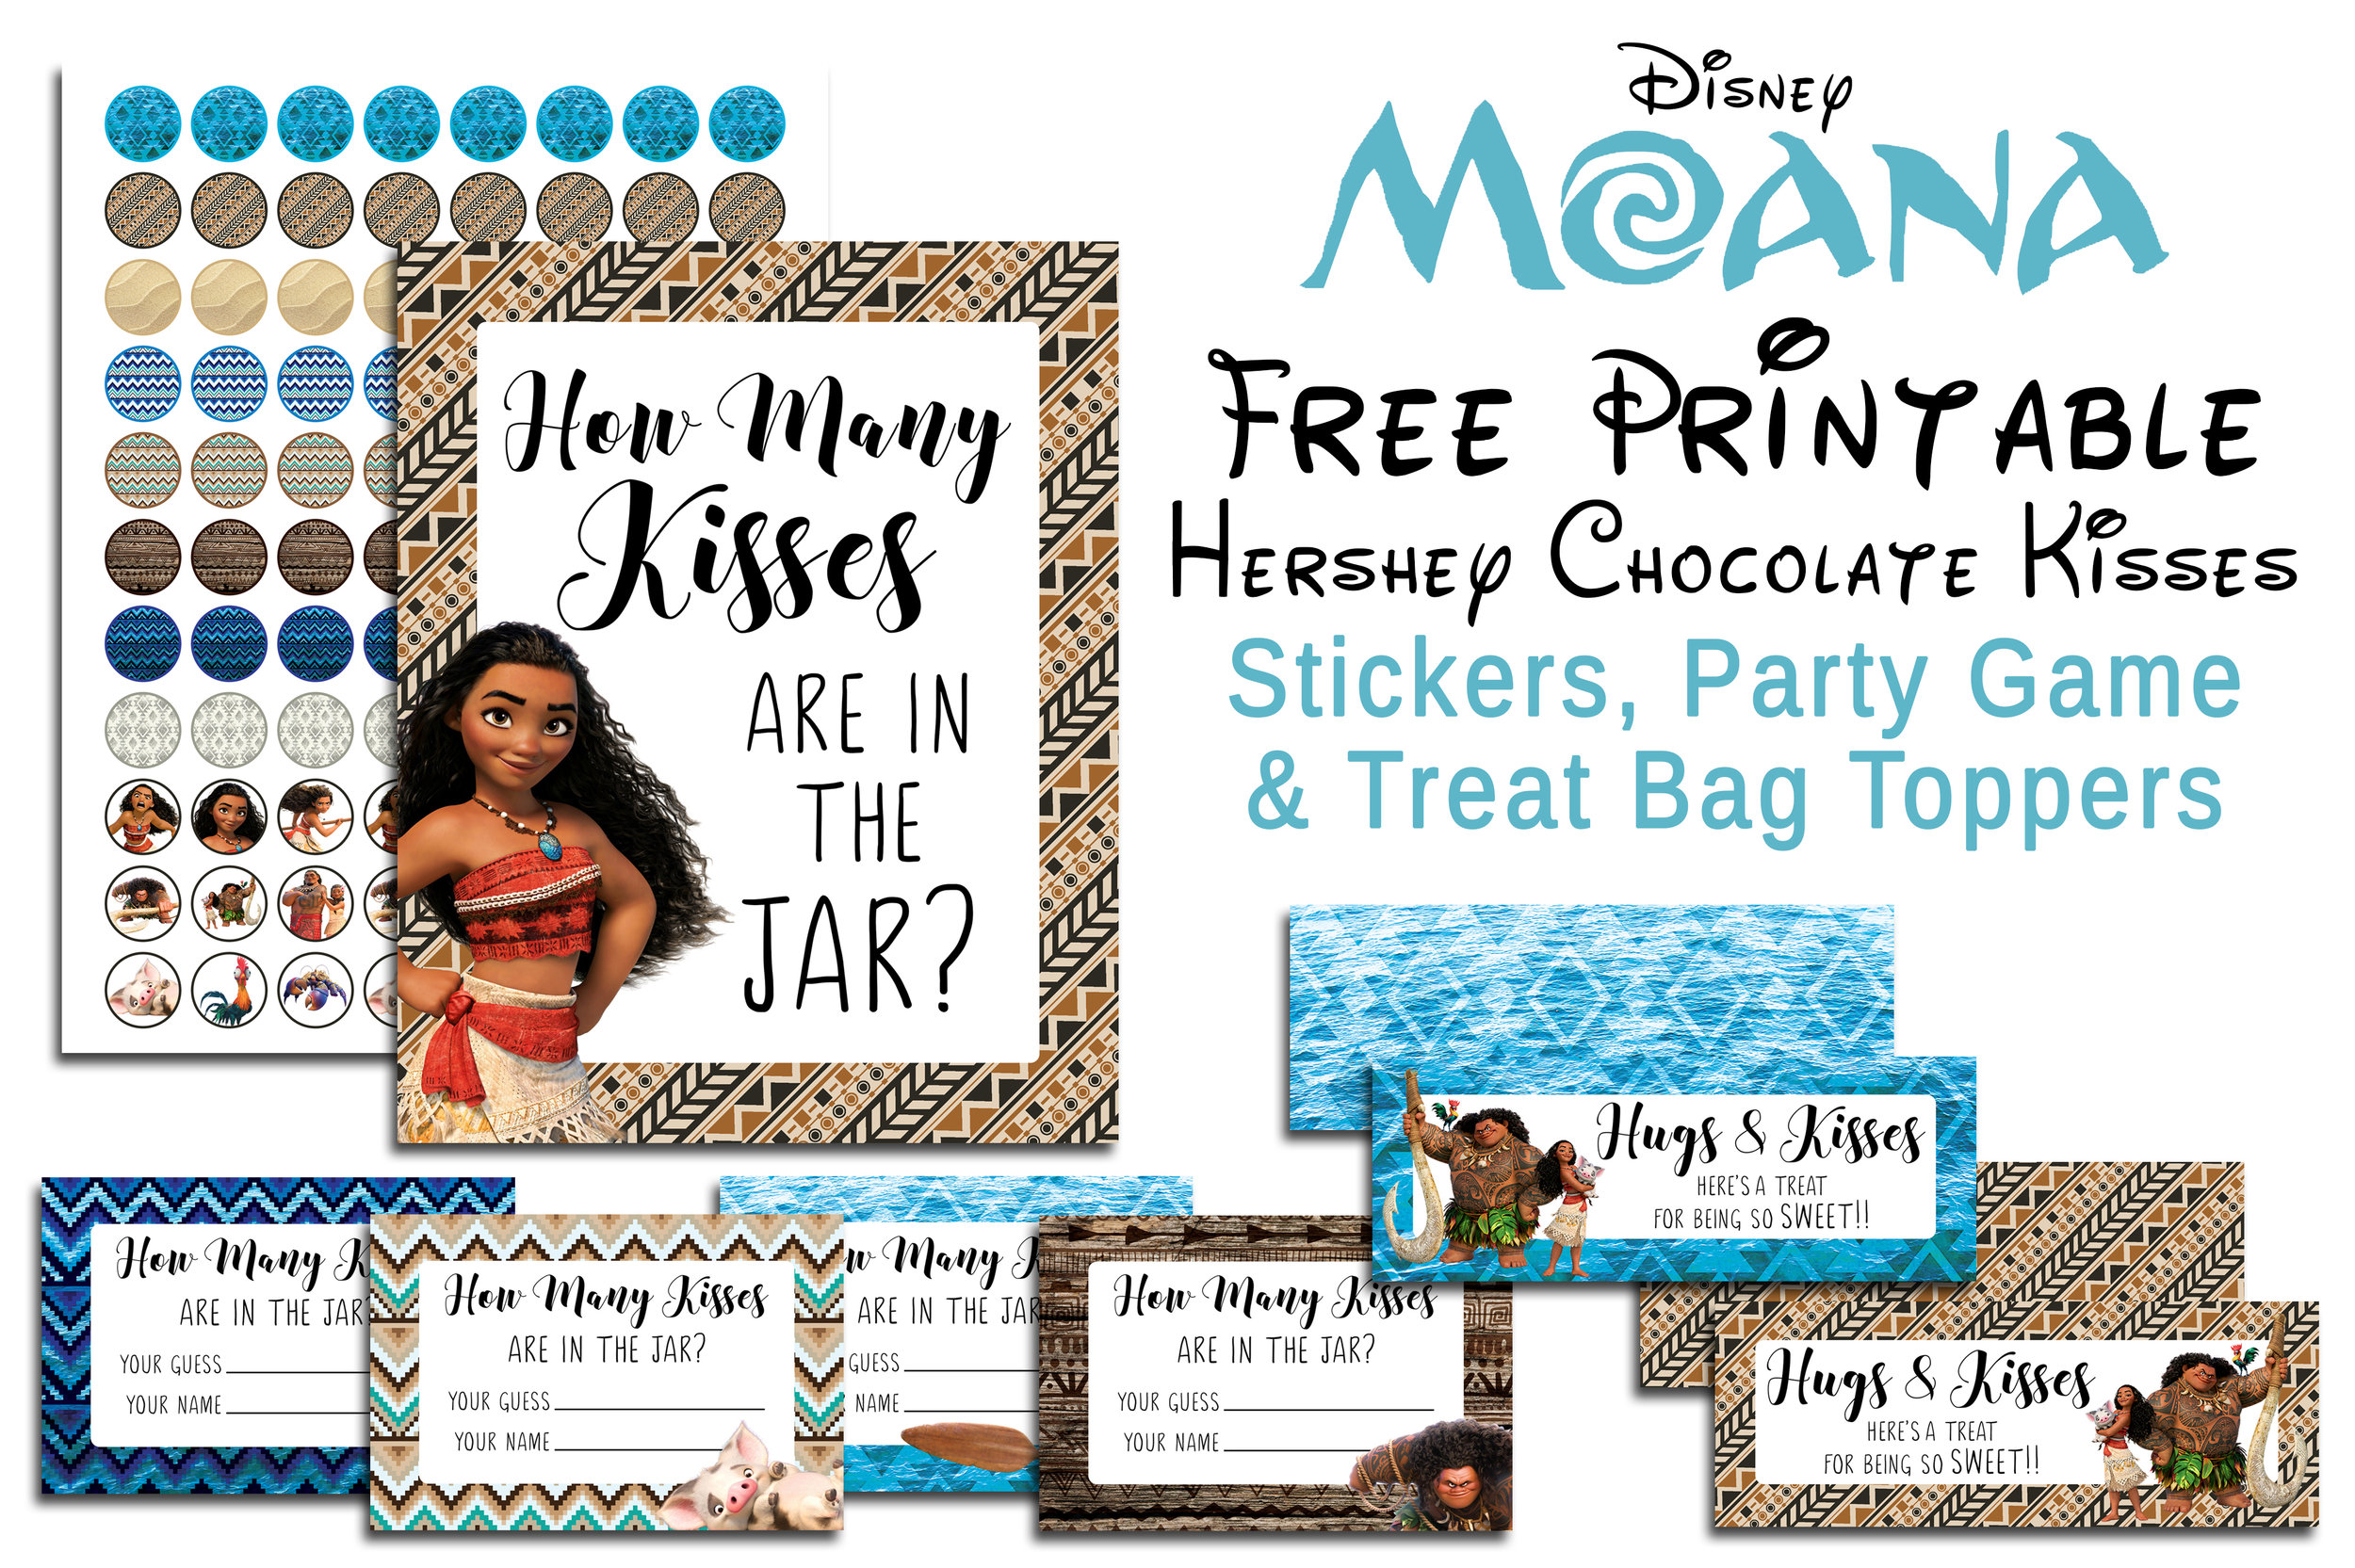 Free Printable Disney Moana Chocolate  Hershey Kiss Stickers